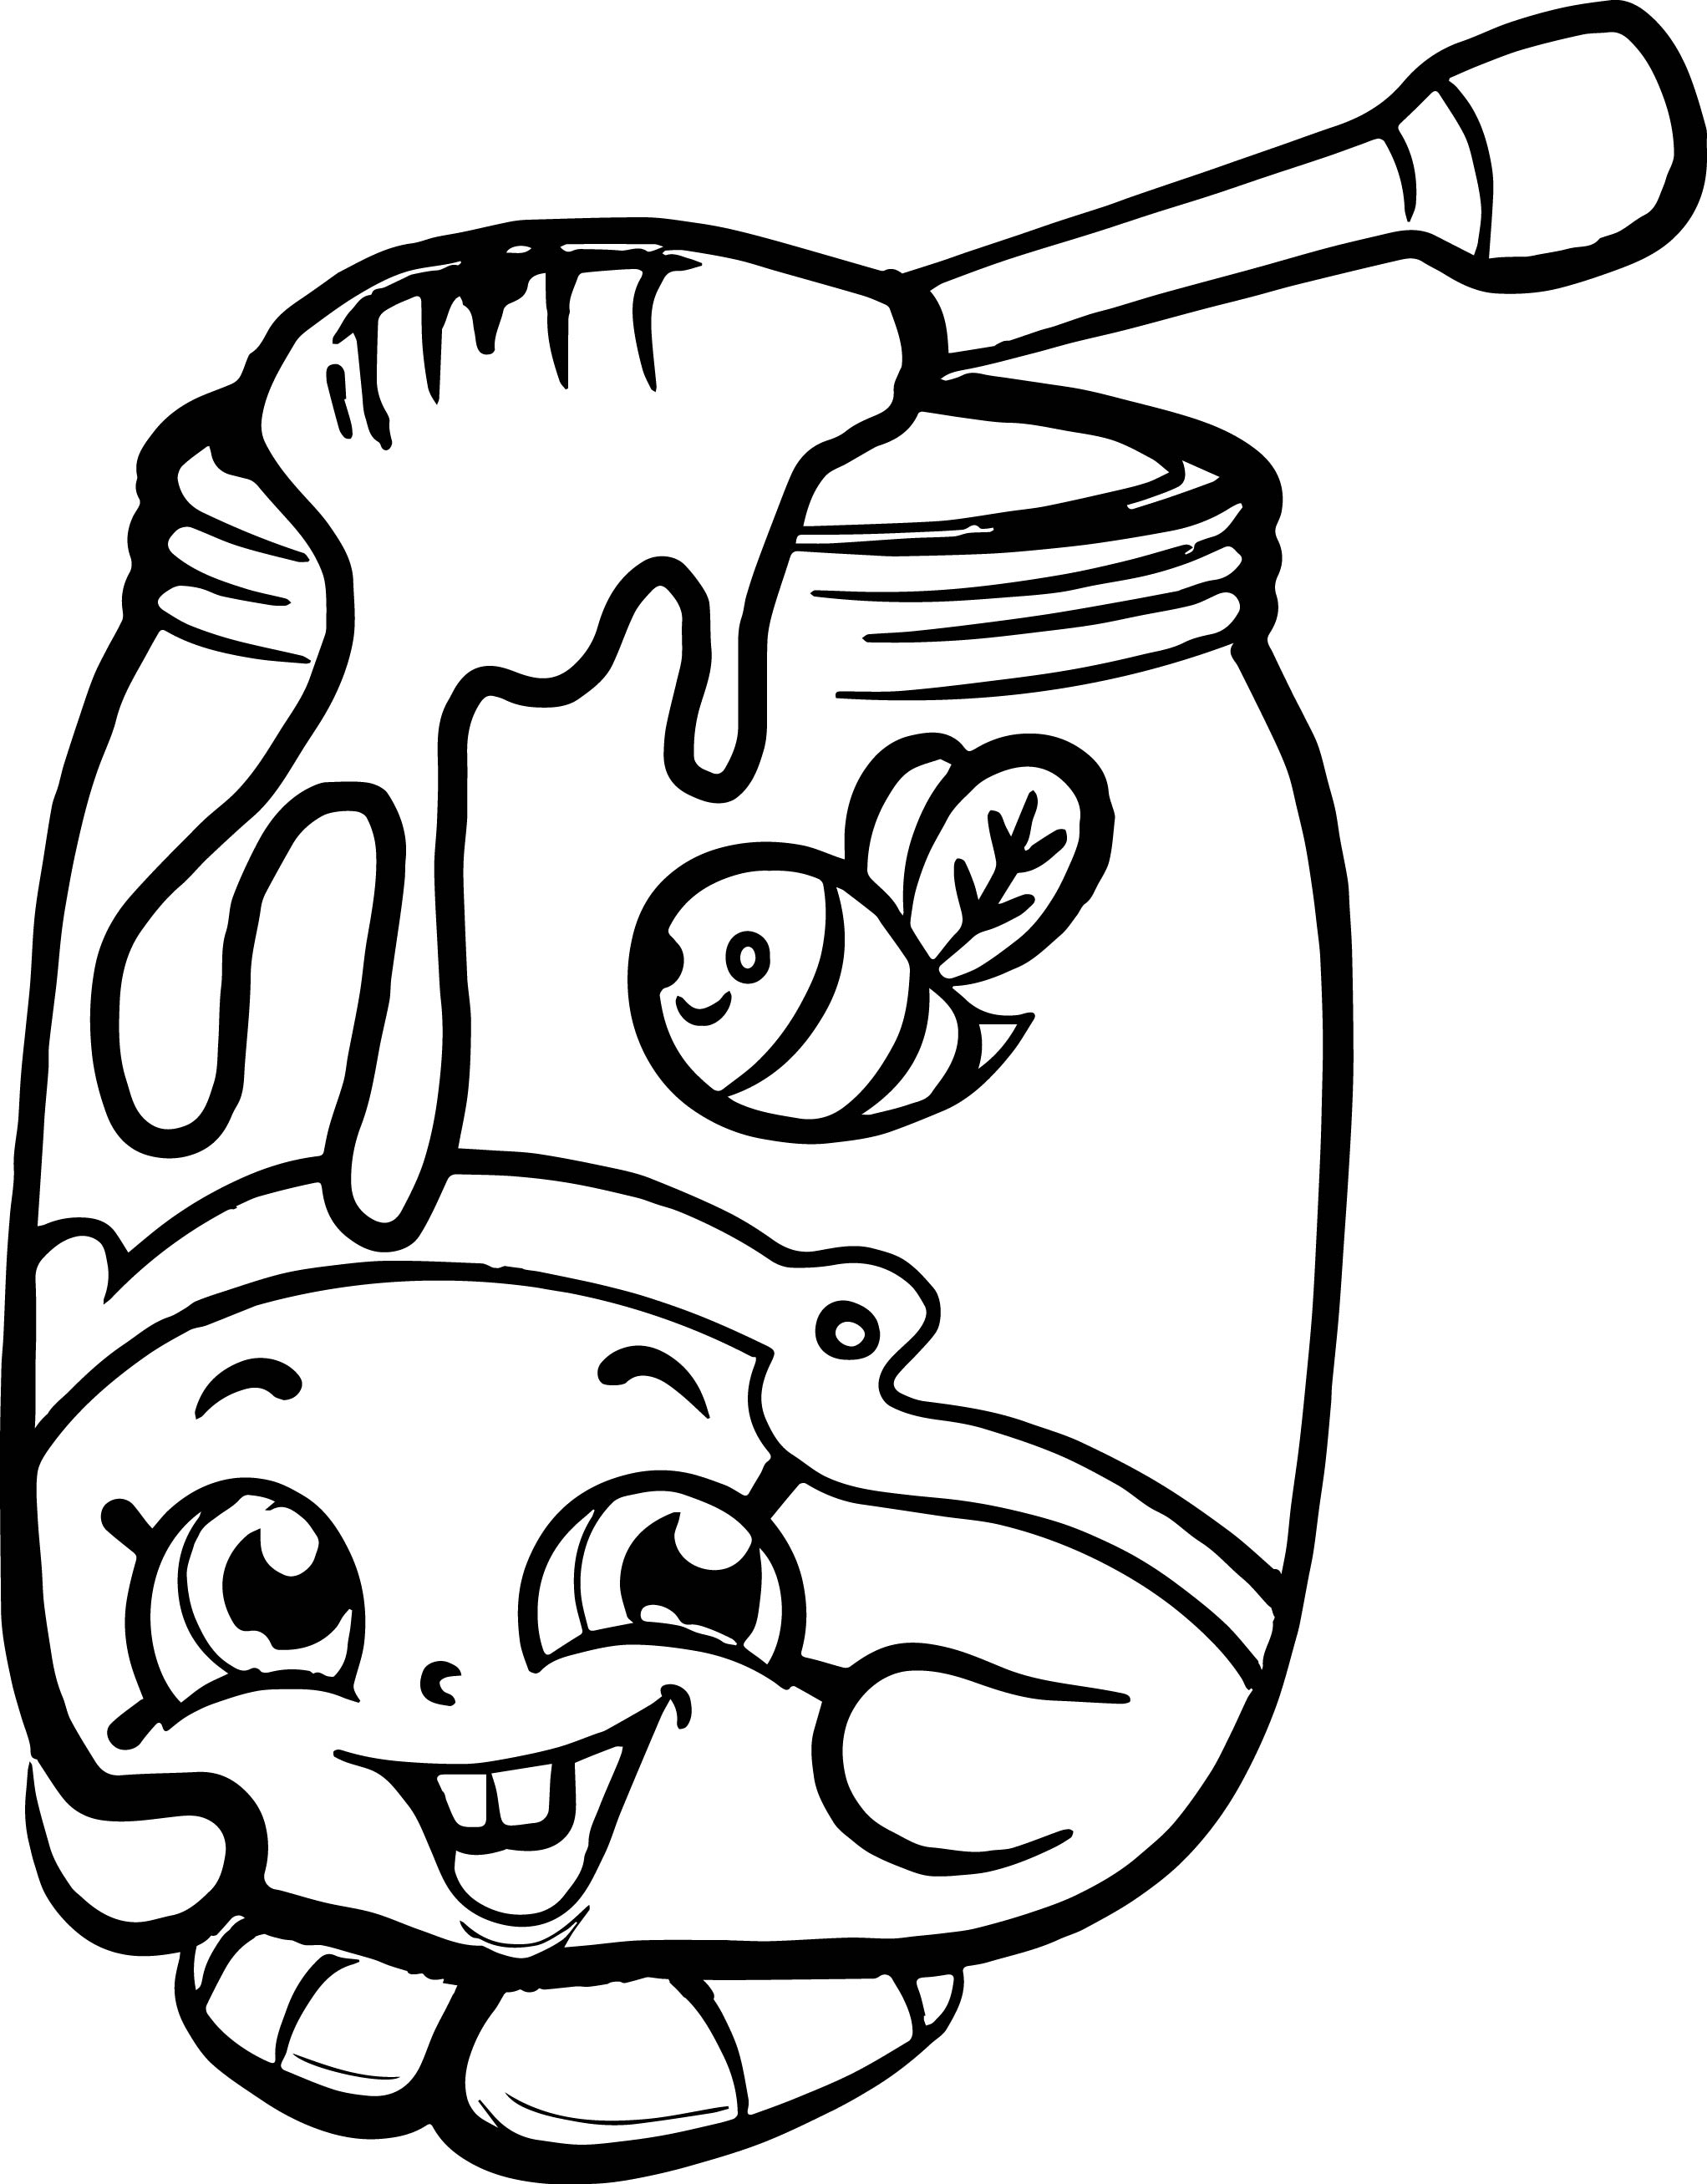 Coloring games of shopkins - Honeeey Shopkins Coloring Page